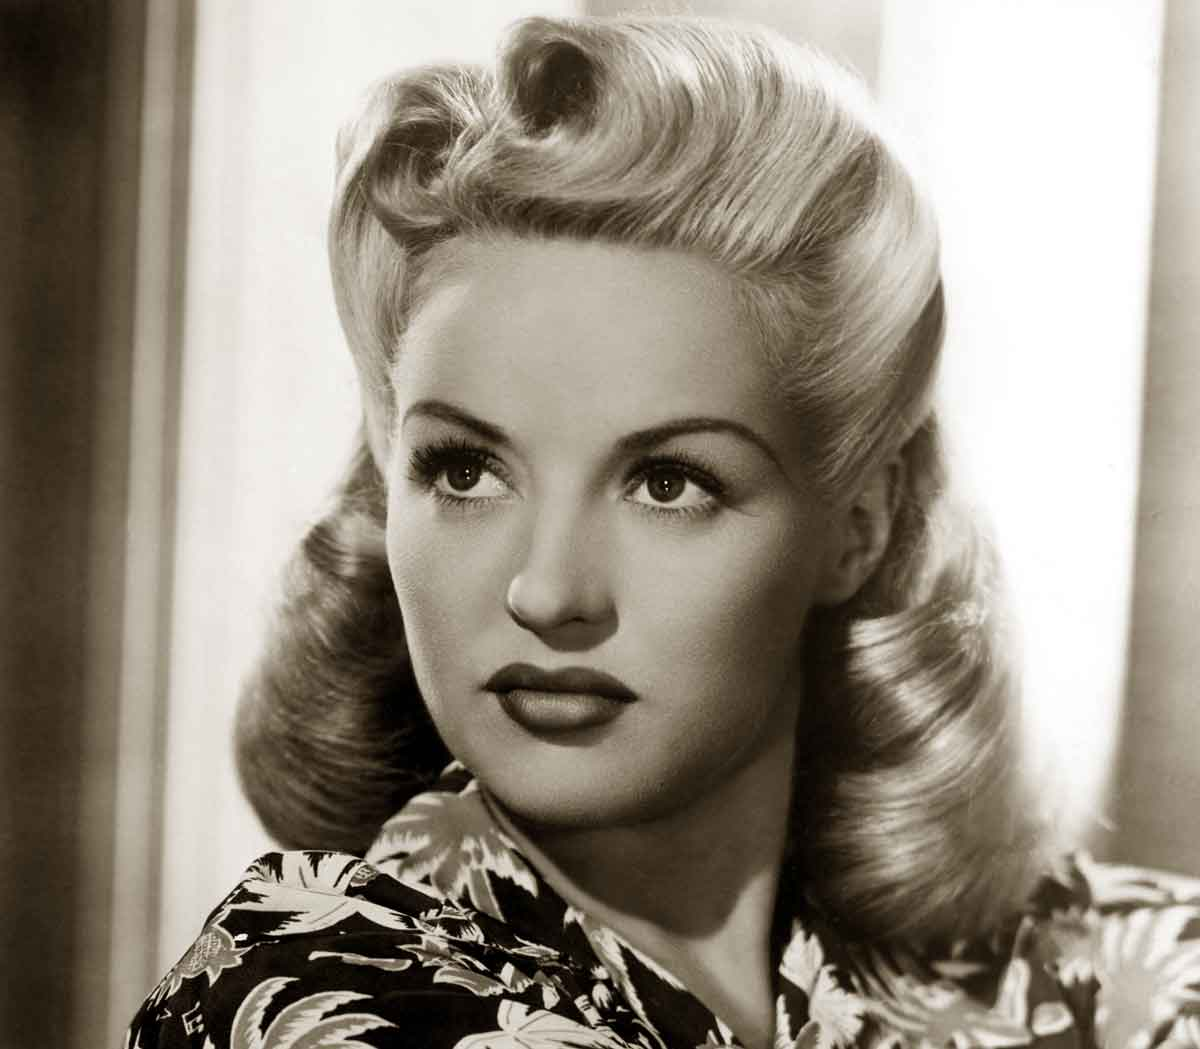 40s style hair 1940s hairstyles memorable pompadours glamourdaze 1937